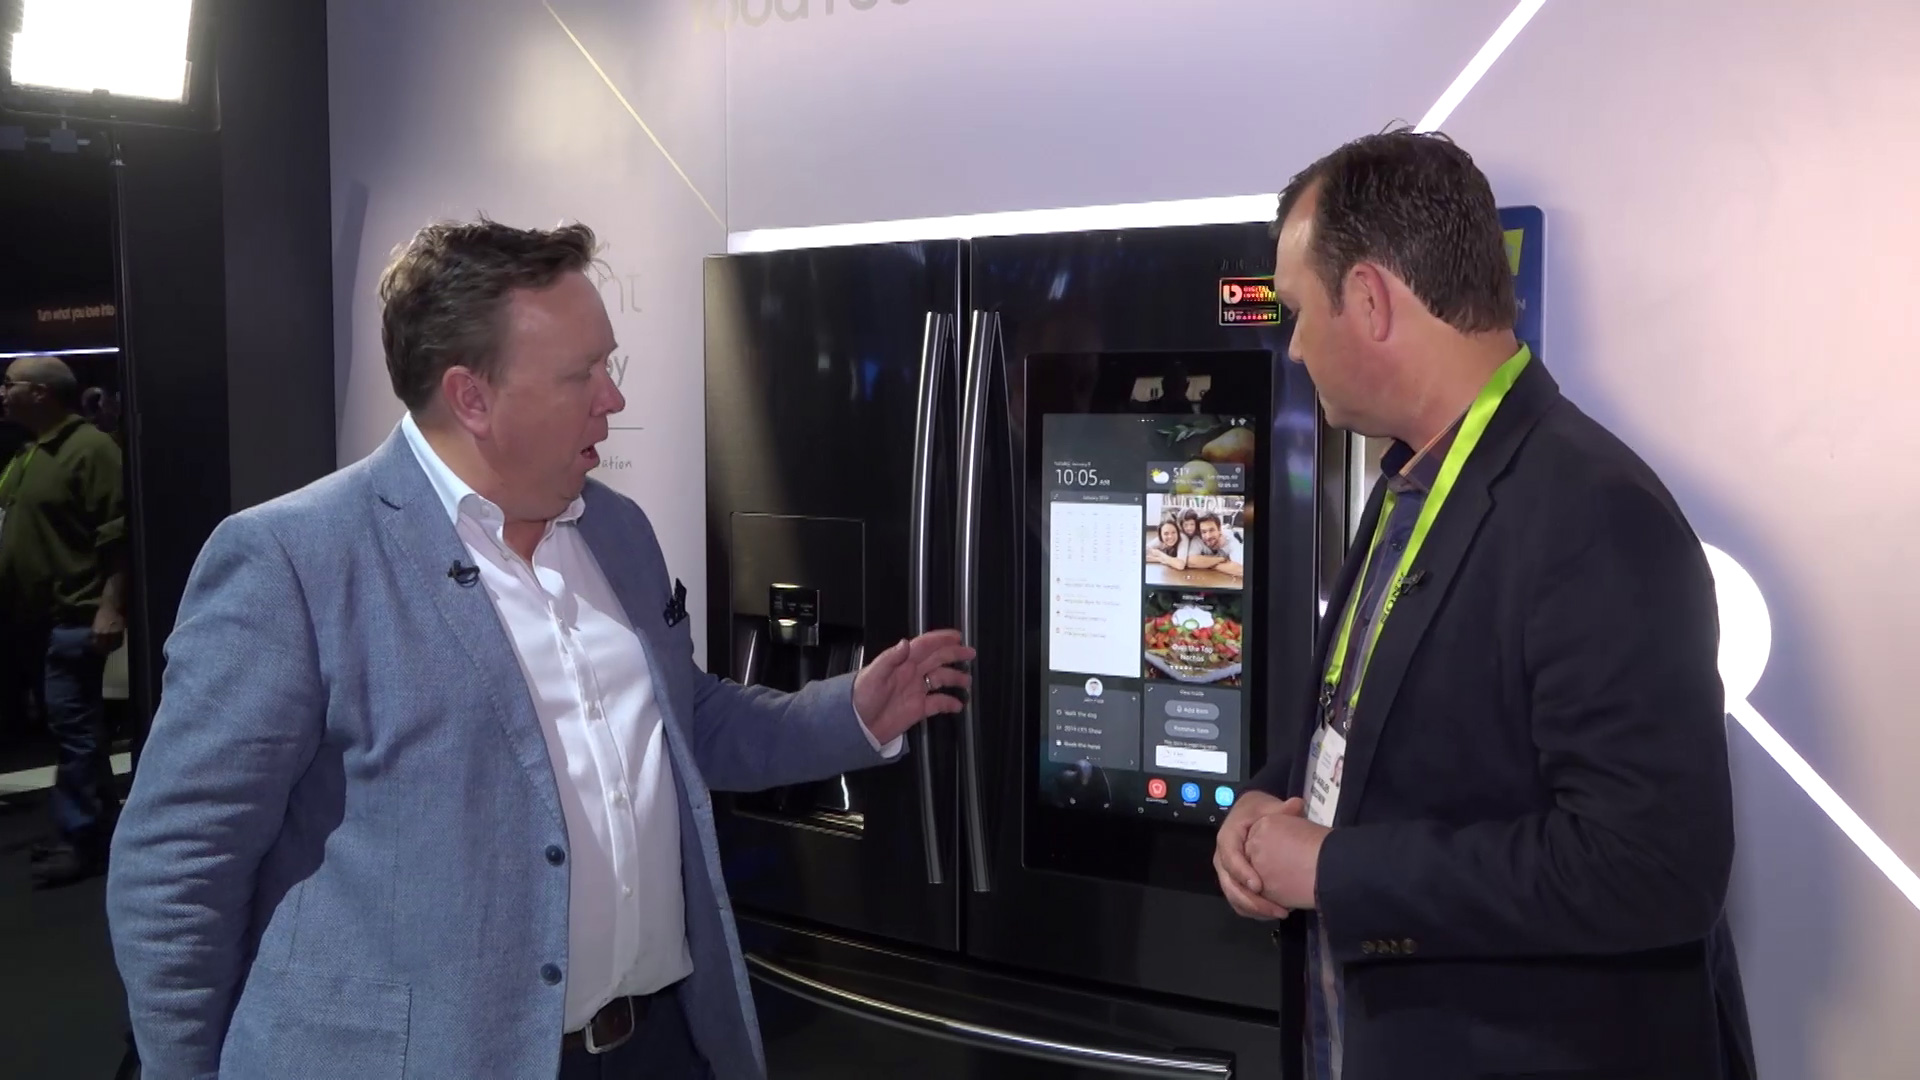 CES 2019: Samsung Connected Home Kitchen